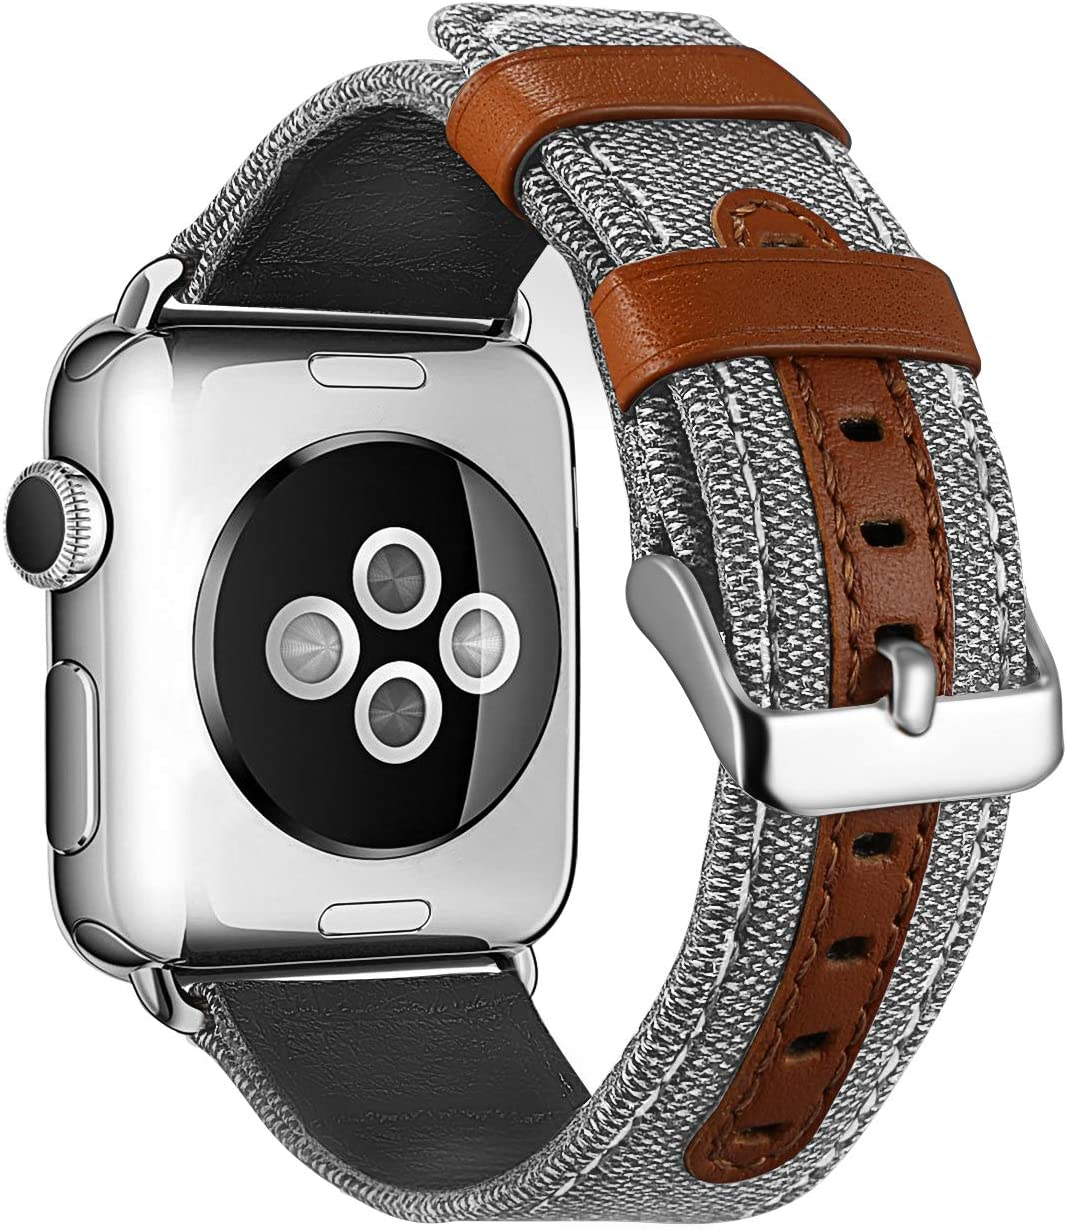 TekSonic Bands Compatible for Apple Watch Series 3 2 1 38mm 42mm Men Women Fancy Canvas Fabric Style Replacement Wristband - Genuine Leather Strap with Metal Clasp for iWatch Nike+ (Cream, 42mm)